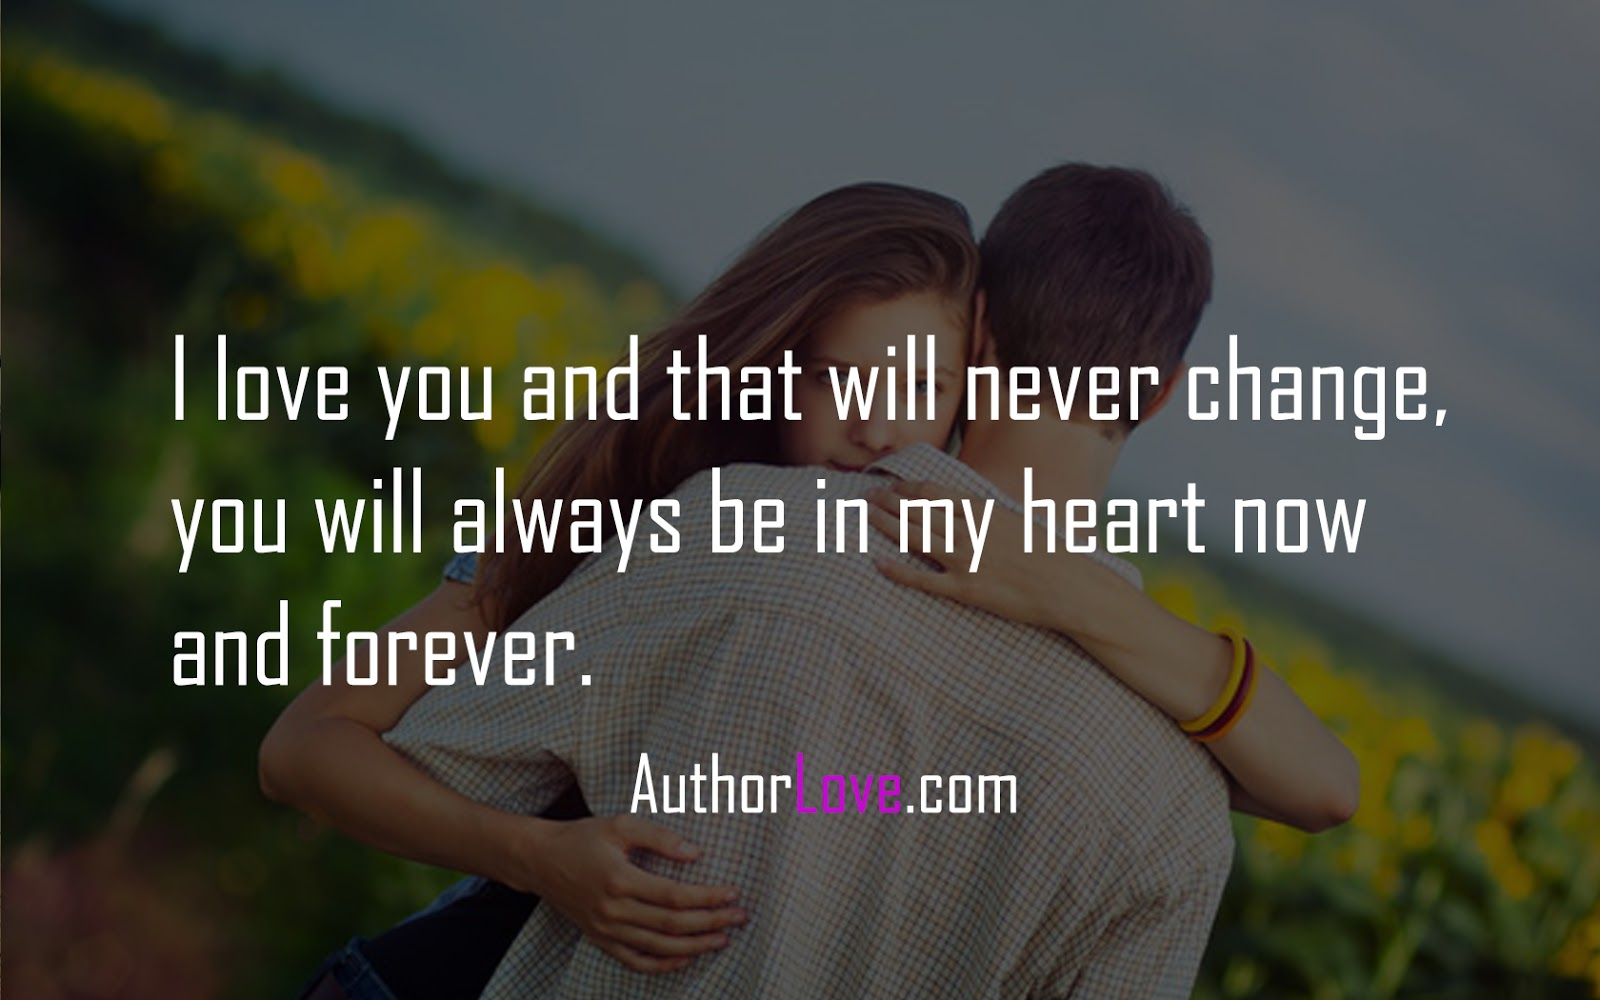 Heart Love Quotes I Love You And That Will Never Change  Love Quotes  Author Love